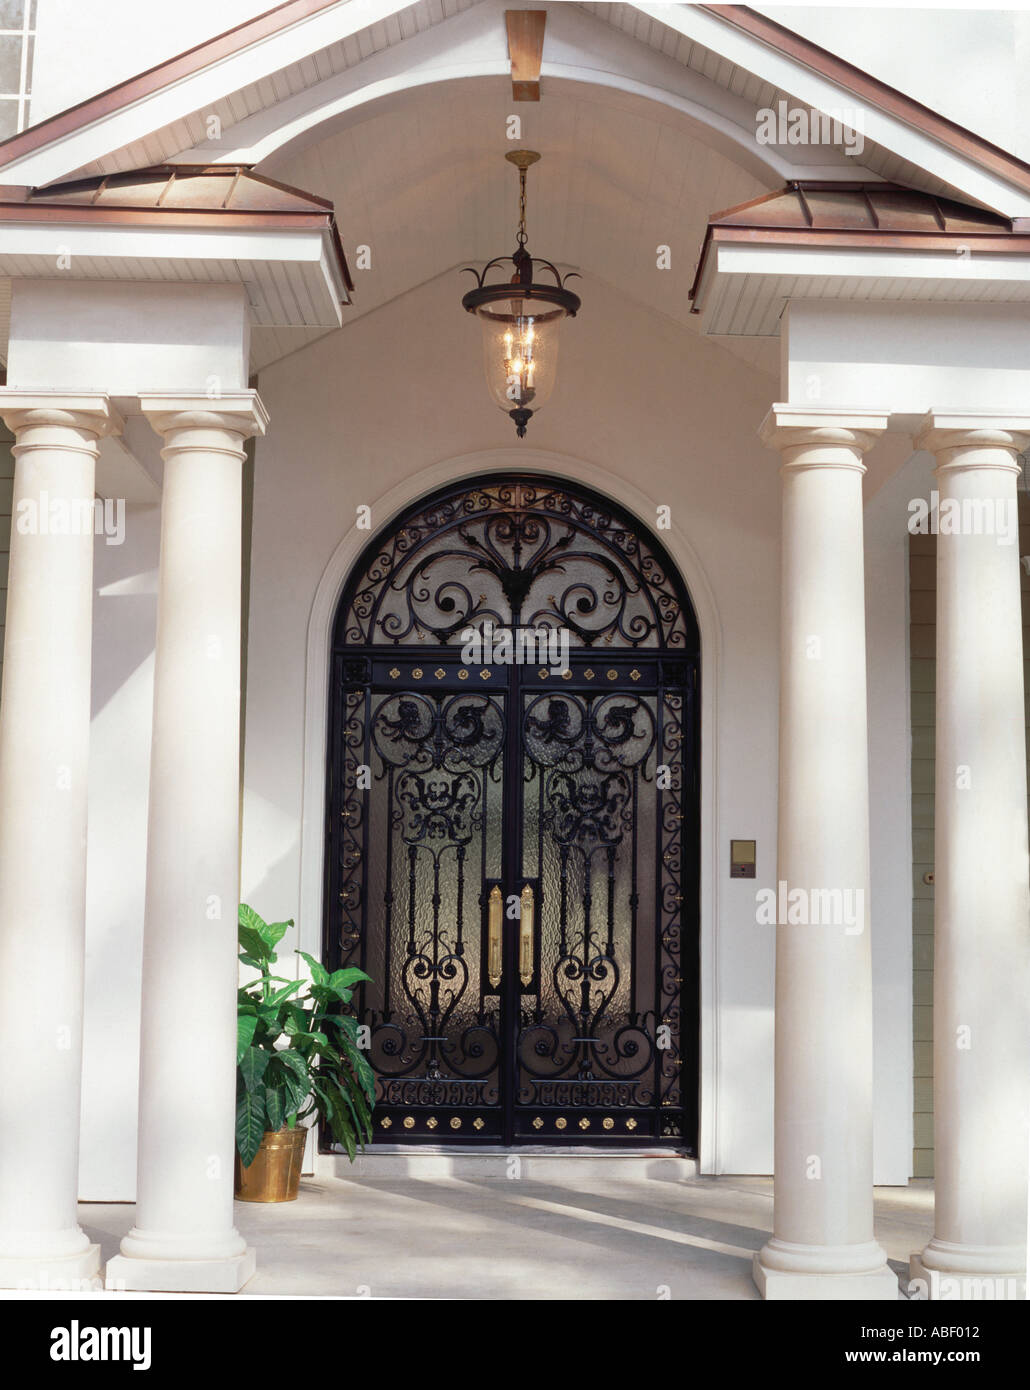 Custom Wrought Iron Front Doors Installed On Residential